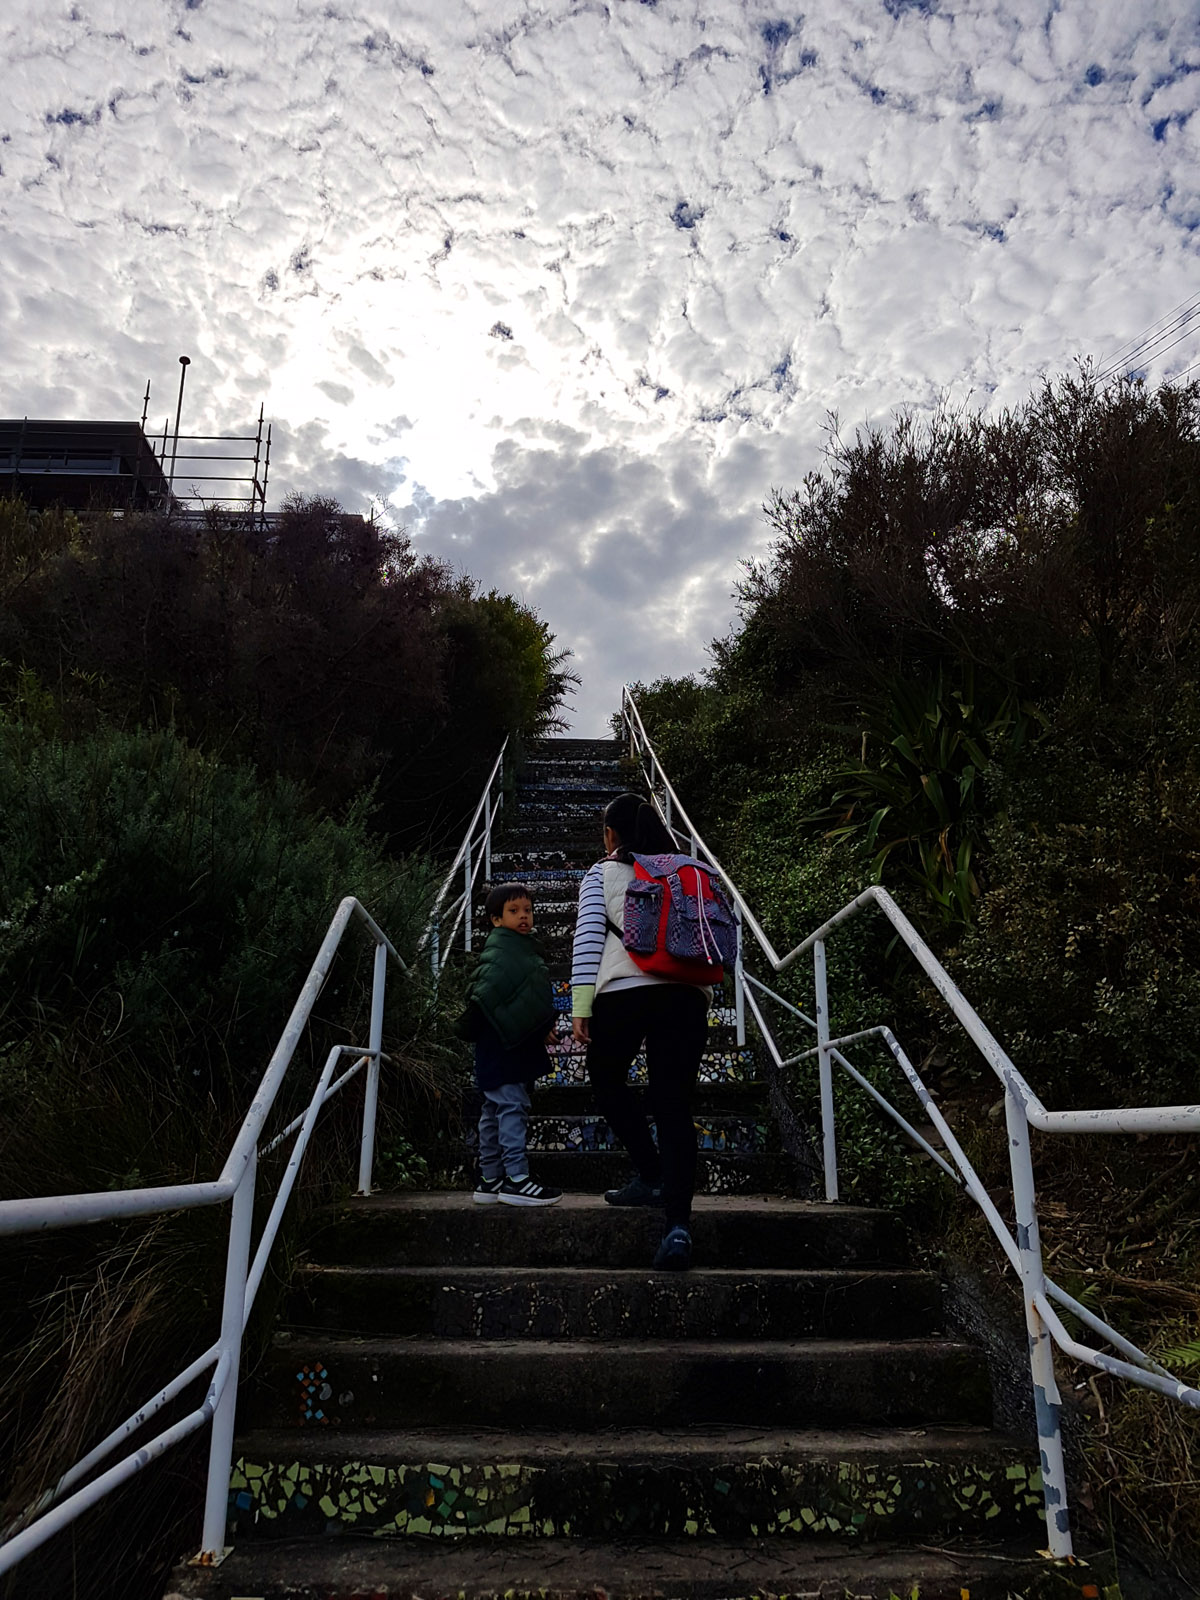 SGMT Australia Sydney_Bondi to Coogee Coastal Walk_11 Clouds and colorful stairs